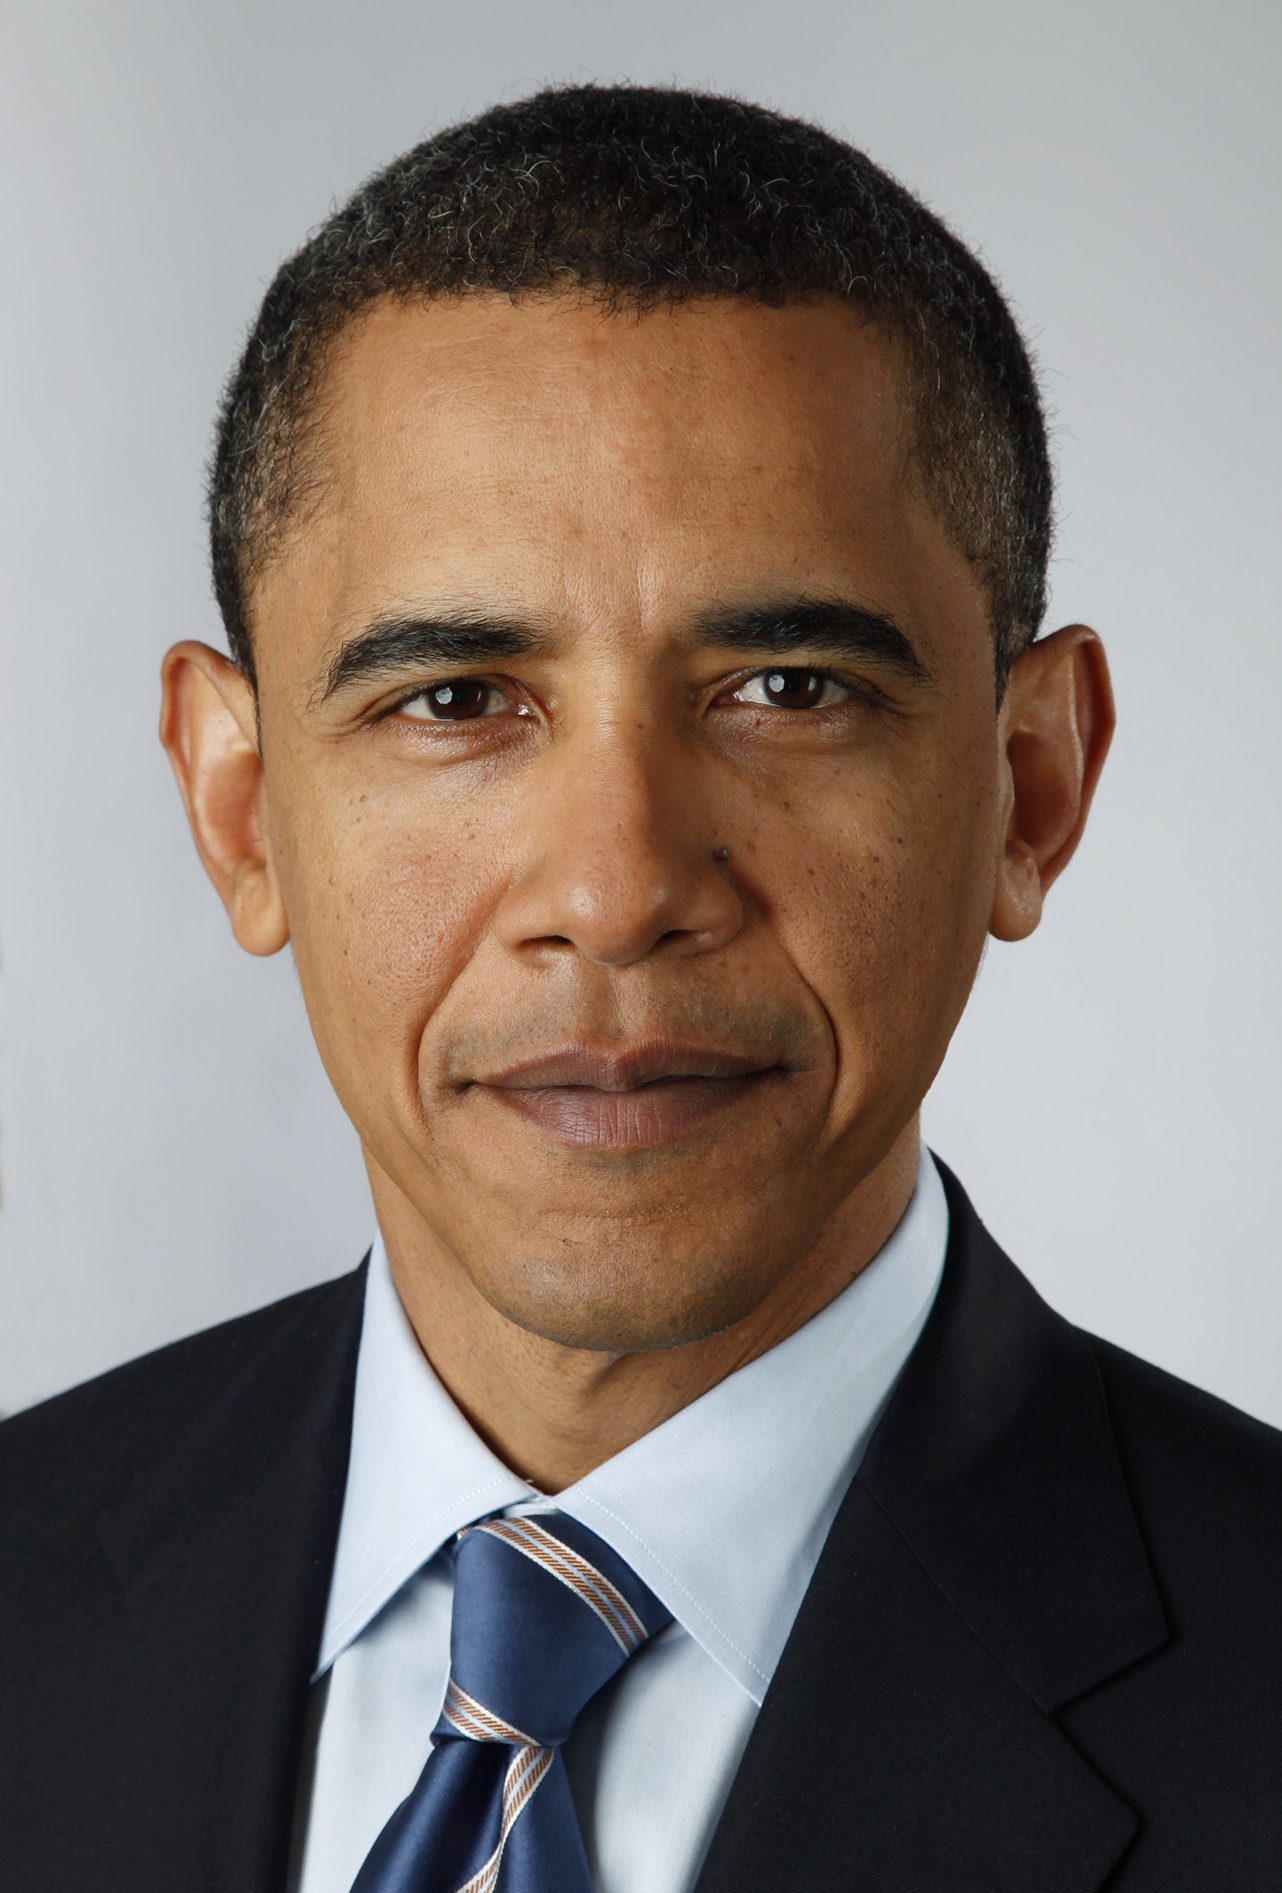 - Official_portrait_of_Barack_Obama-2